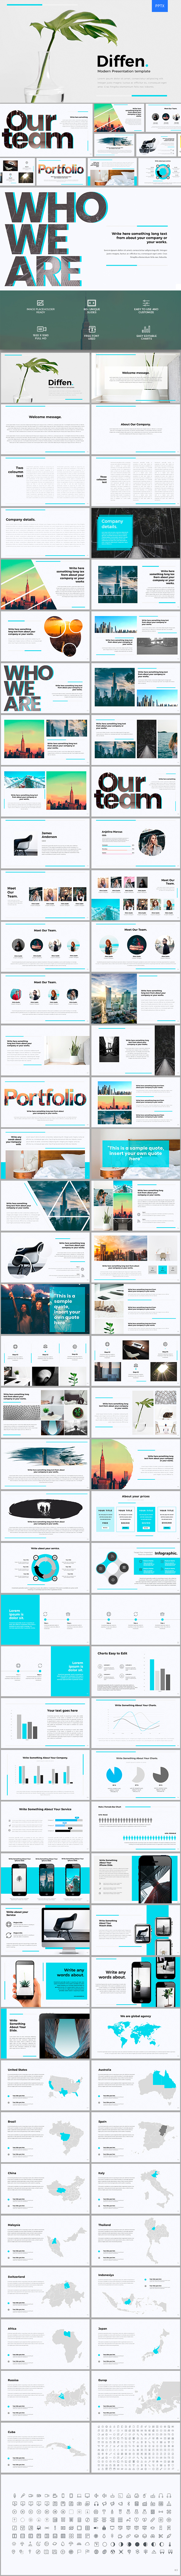 Diffen Powerpoint Template - PowerPoint Templates Presentation Templates